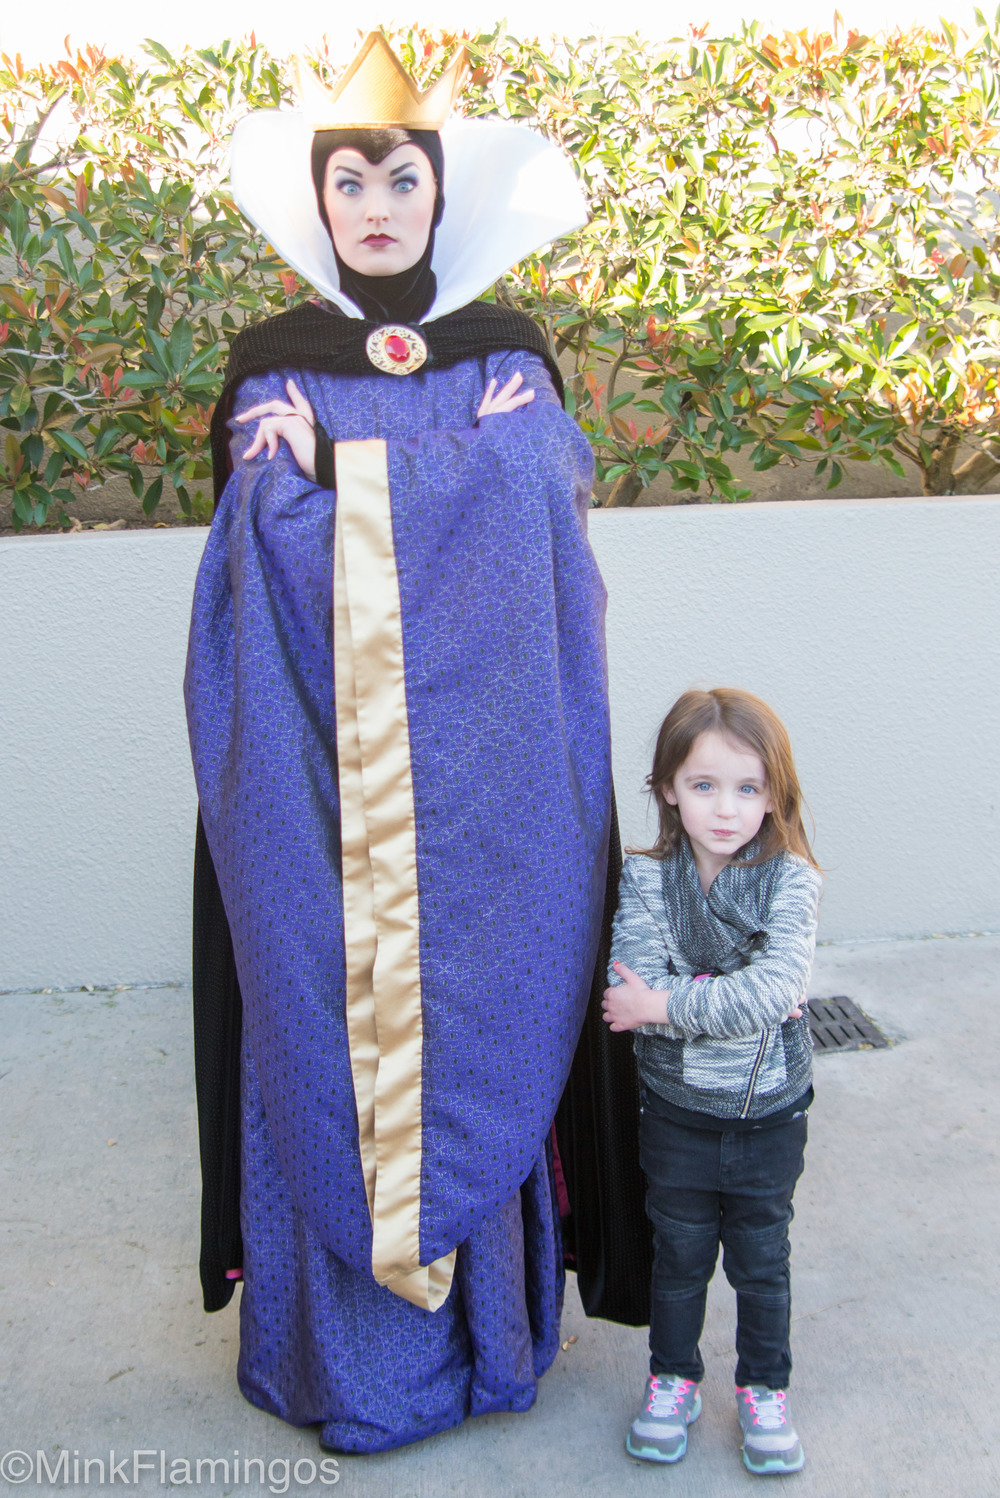 Evil Queen Grimhilde (Snow White) only sporadically greets guests at Hollywood Studios